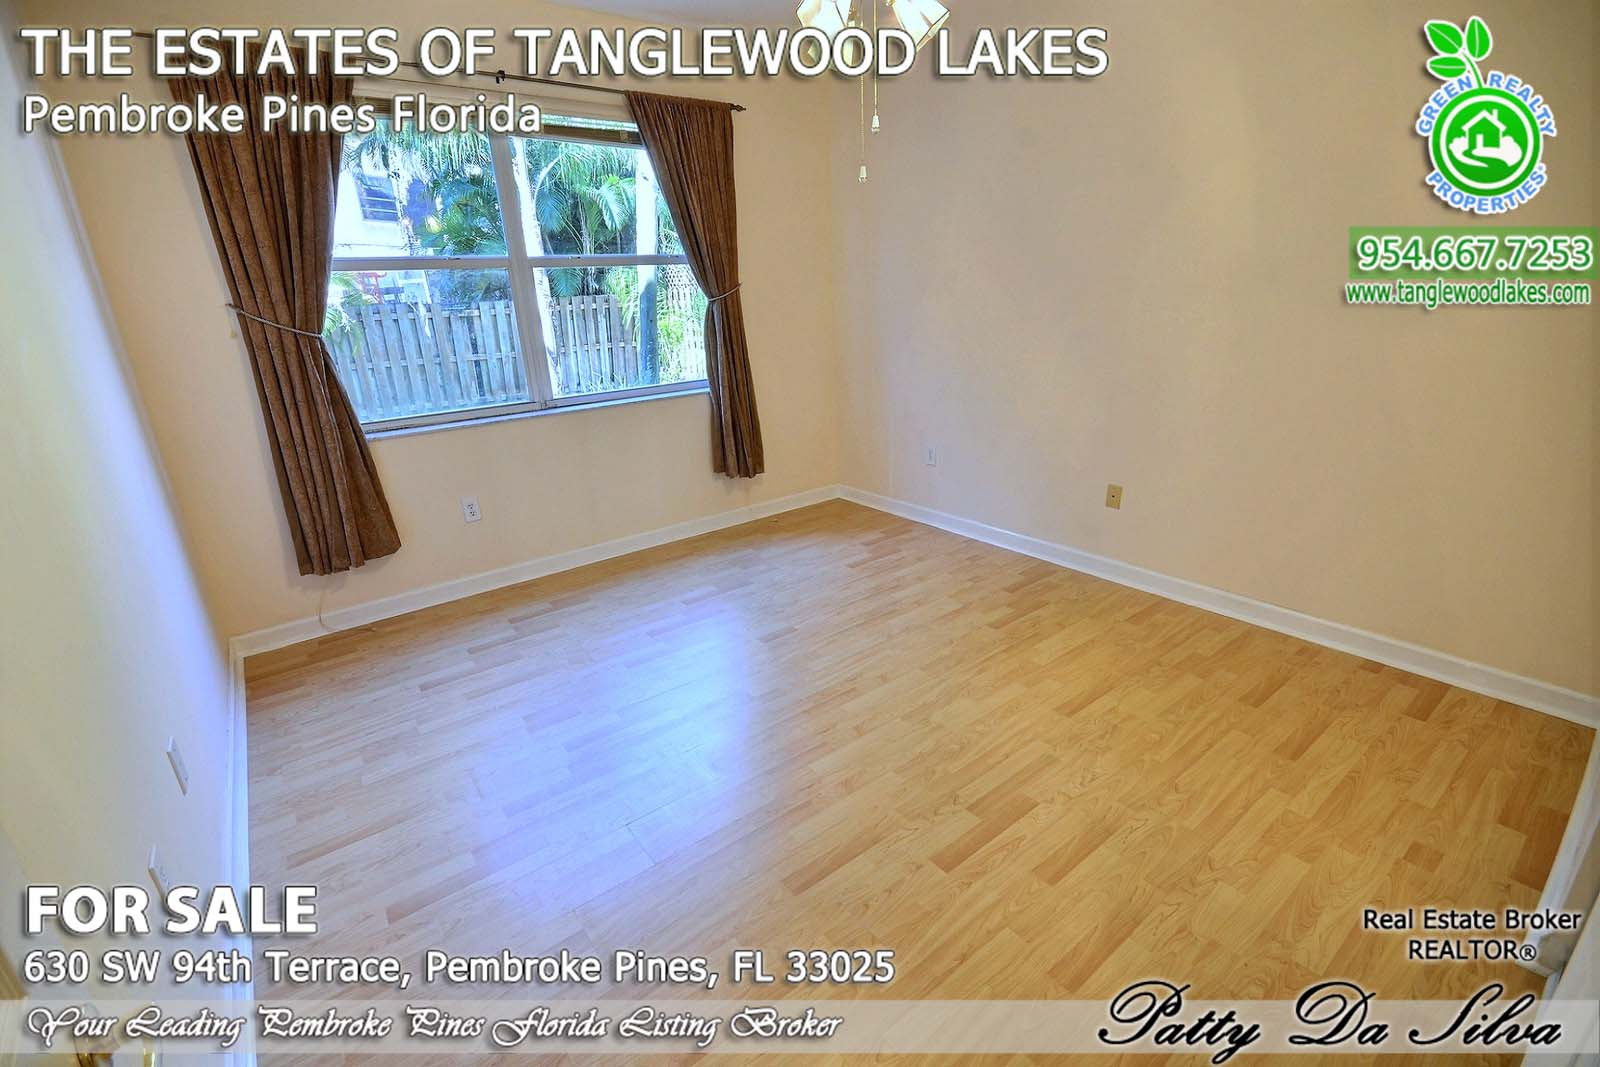 Homes for Sale in Tanglewood Lakes Pembroke Pines